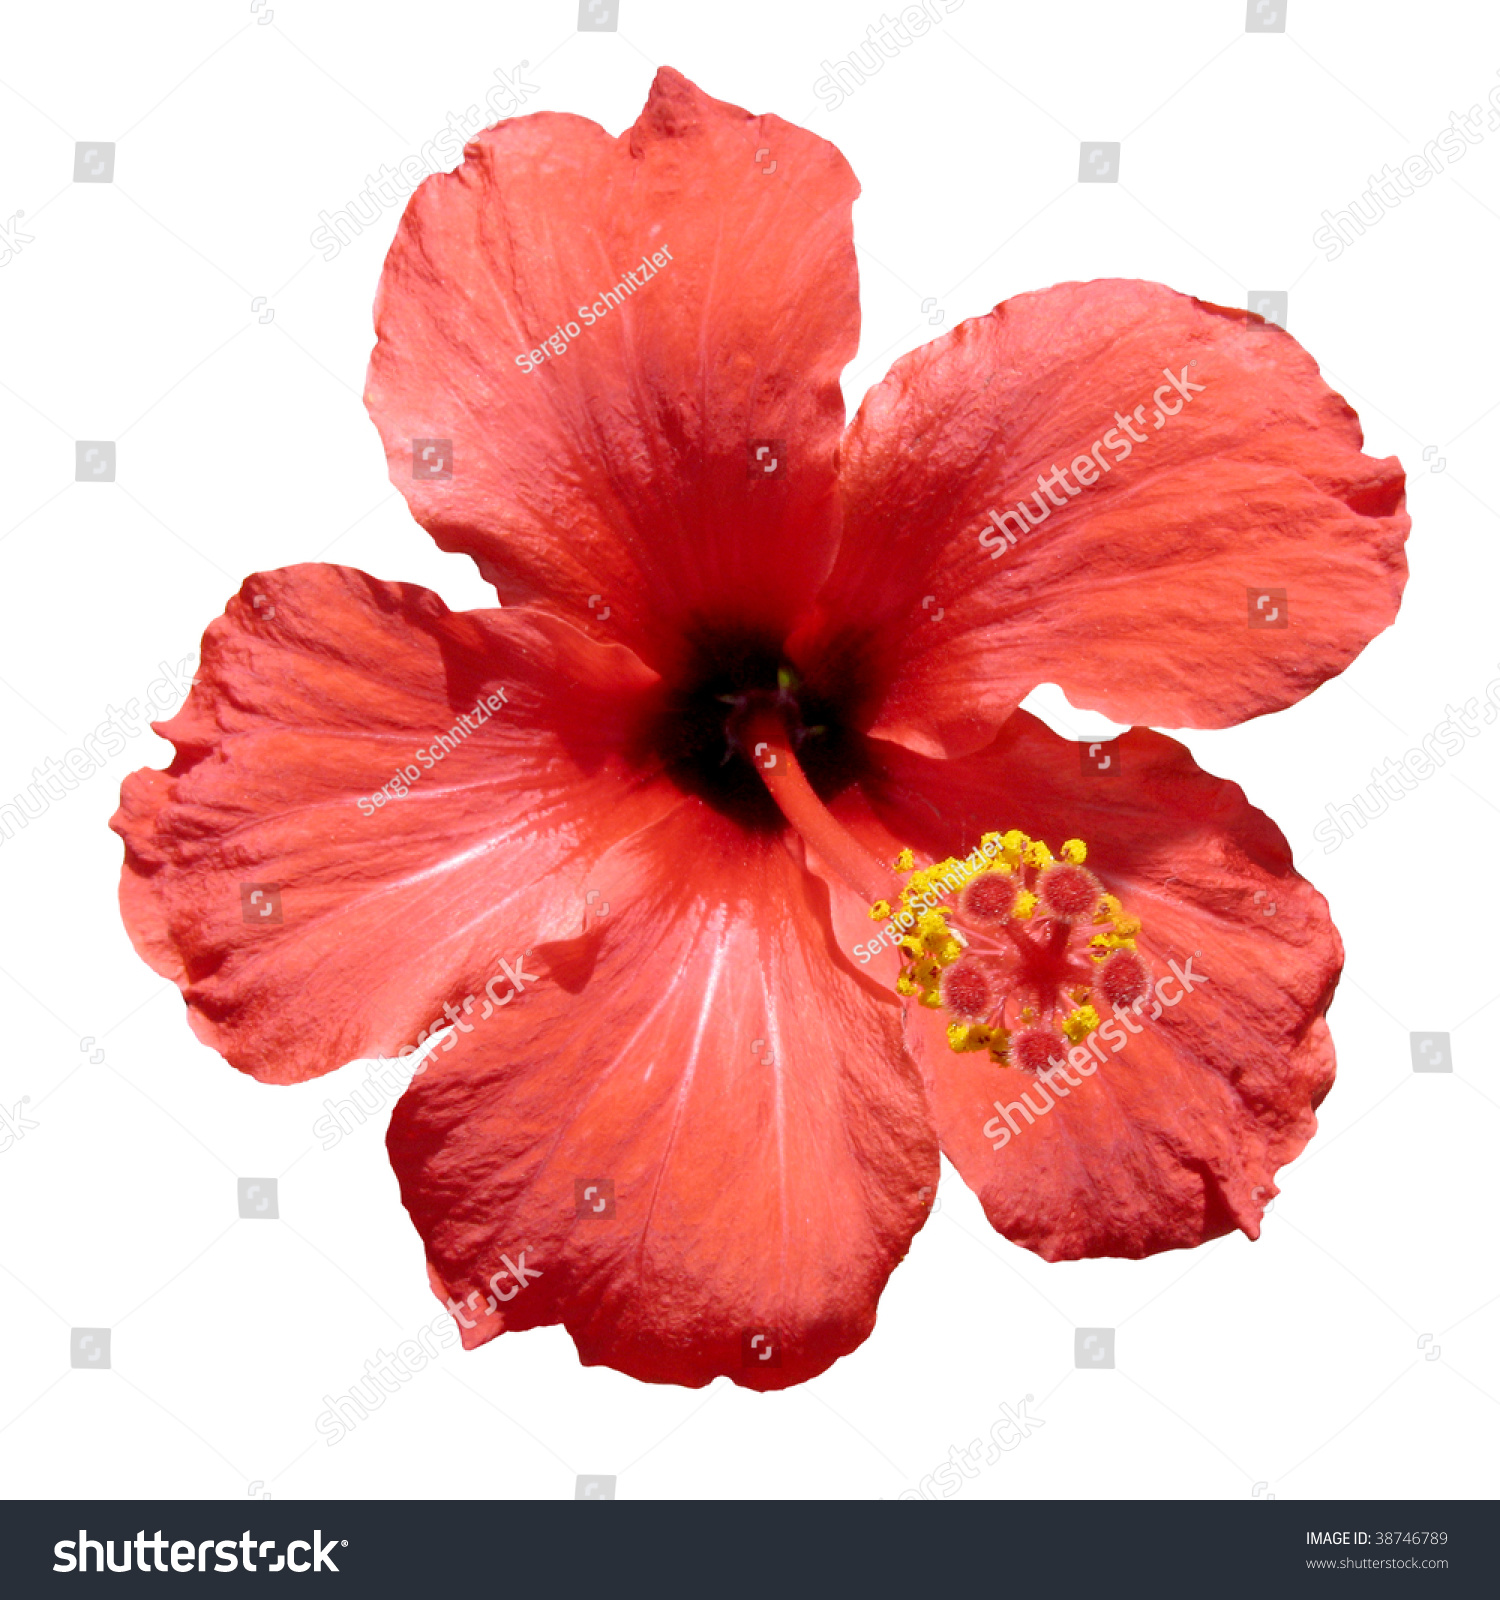 Red hibiscus flower known rosemallow hibiscus stock photo edit now a red hibiscus flower also known as rosemallow or hibiscus rosa sinensis isolated izmirmasajfo